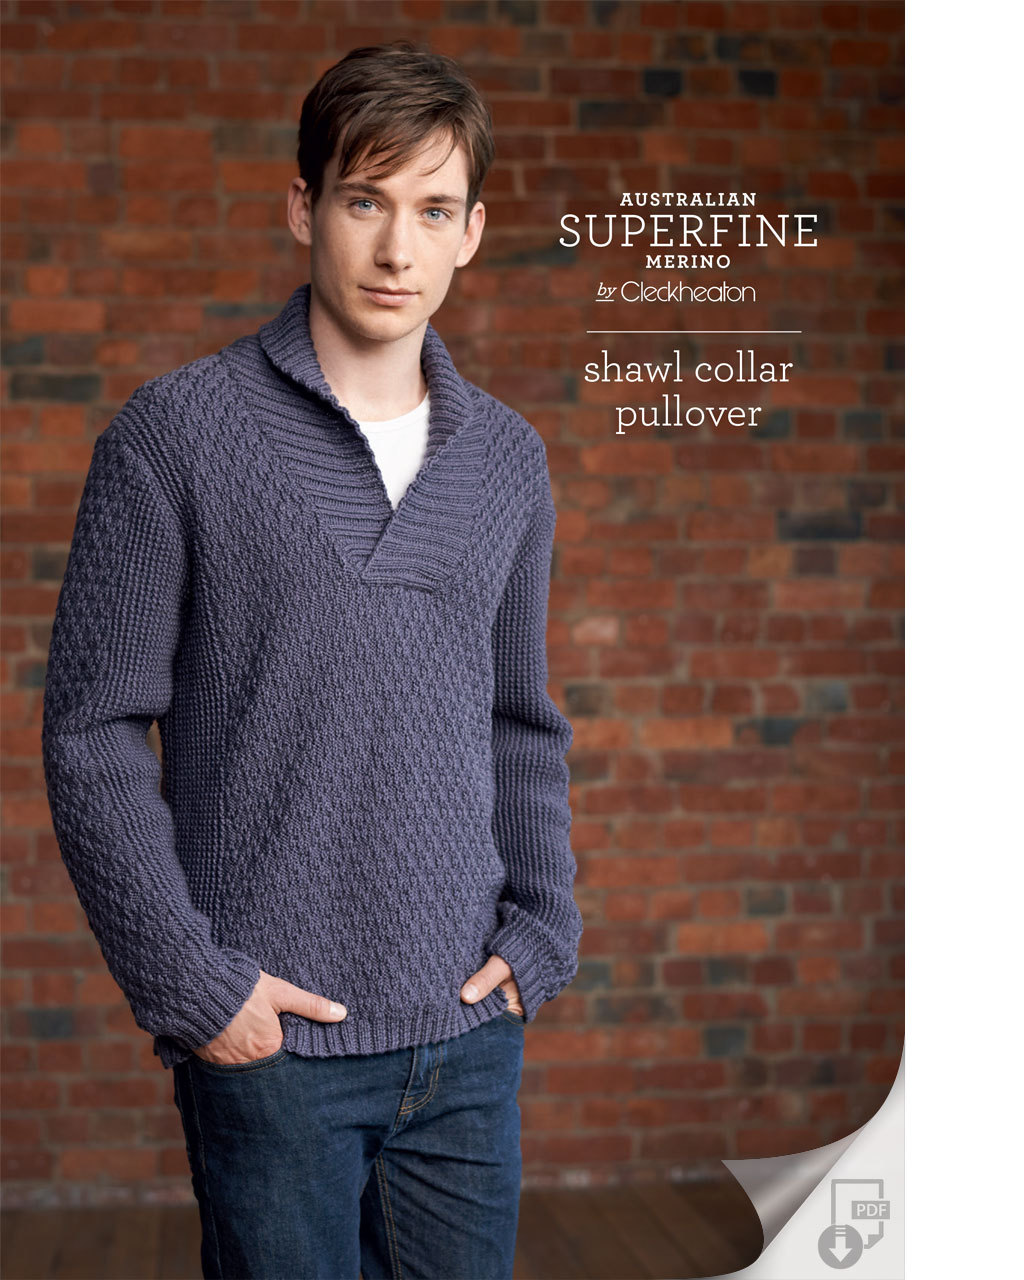 Shawl collar pullover by Cleckheaton2.jpg